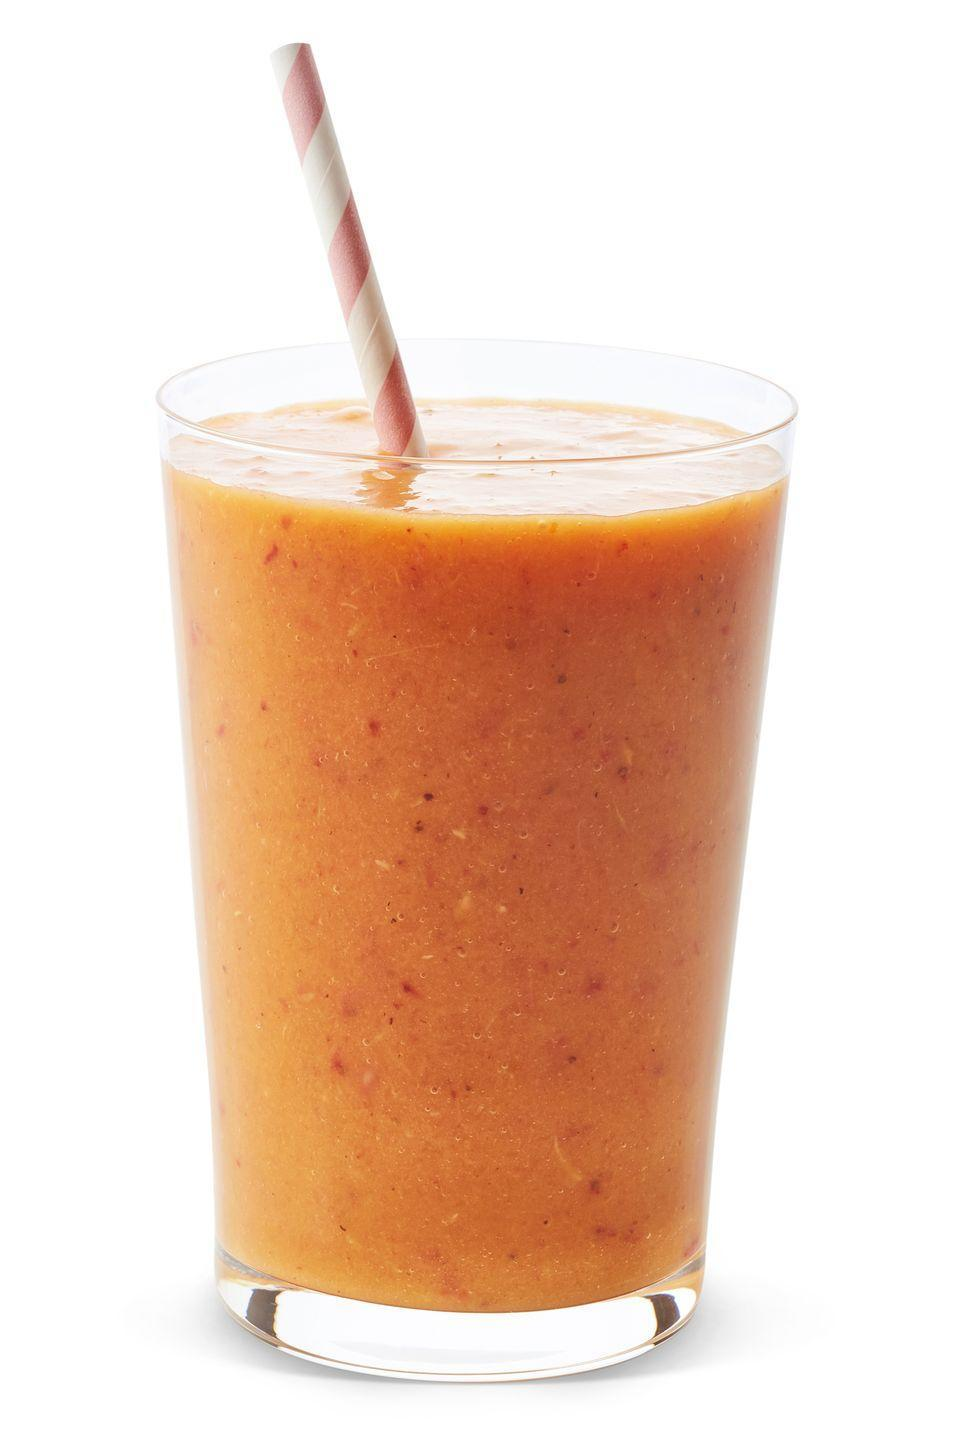 "<p>According to Bauer, this fall-flavored drink has ""beta-carotene, calcium, fiber, magnesium, and potassium.""</p><p><strong>Ingredients</strong>: 1/2 cup nonfat vanilla yogurt, 1/2 cup almond milk, 1/2 cup pumpkin puree, 1-1/2 tsp maple syrup, 1 ripe banana, 1/4 tsp ground cinnamon, 3 to 5 ice cubes. </p>"